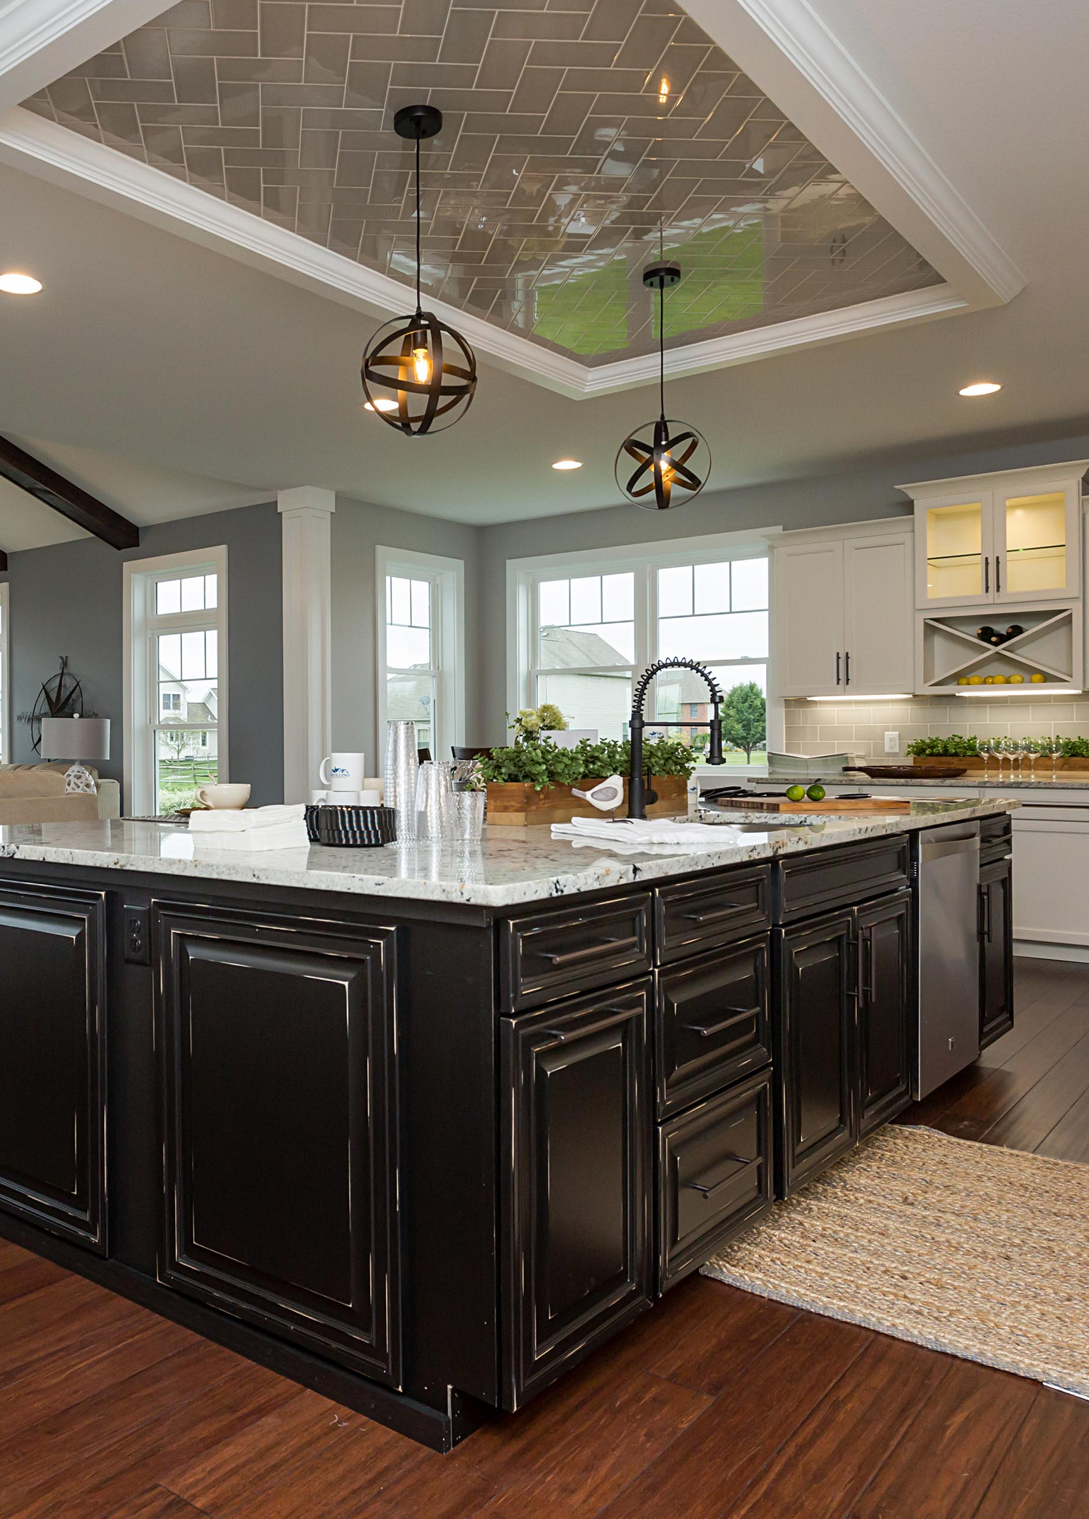 Transitional Off White And Black Two Toned Kitchen Free Kitchen